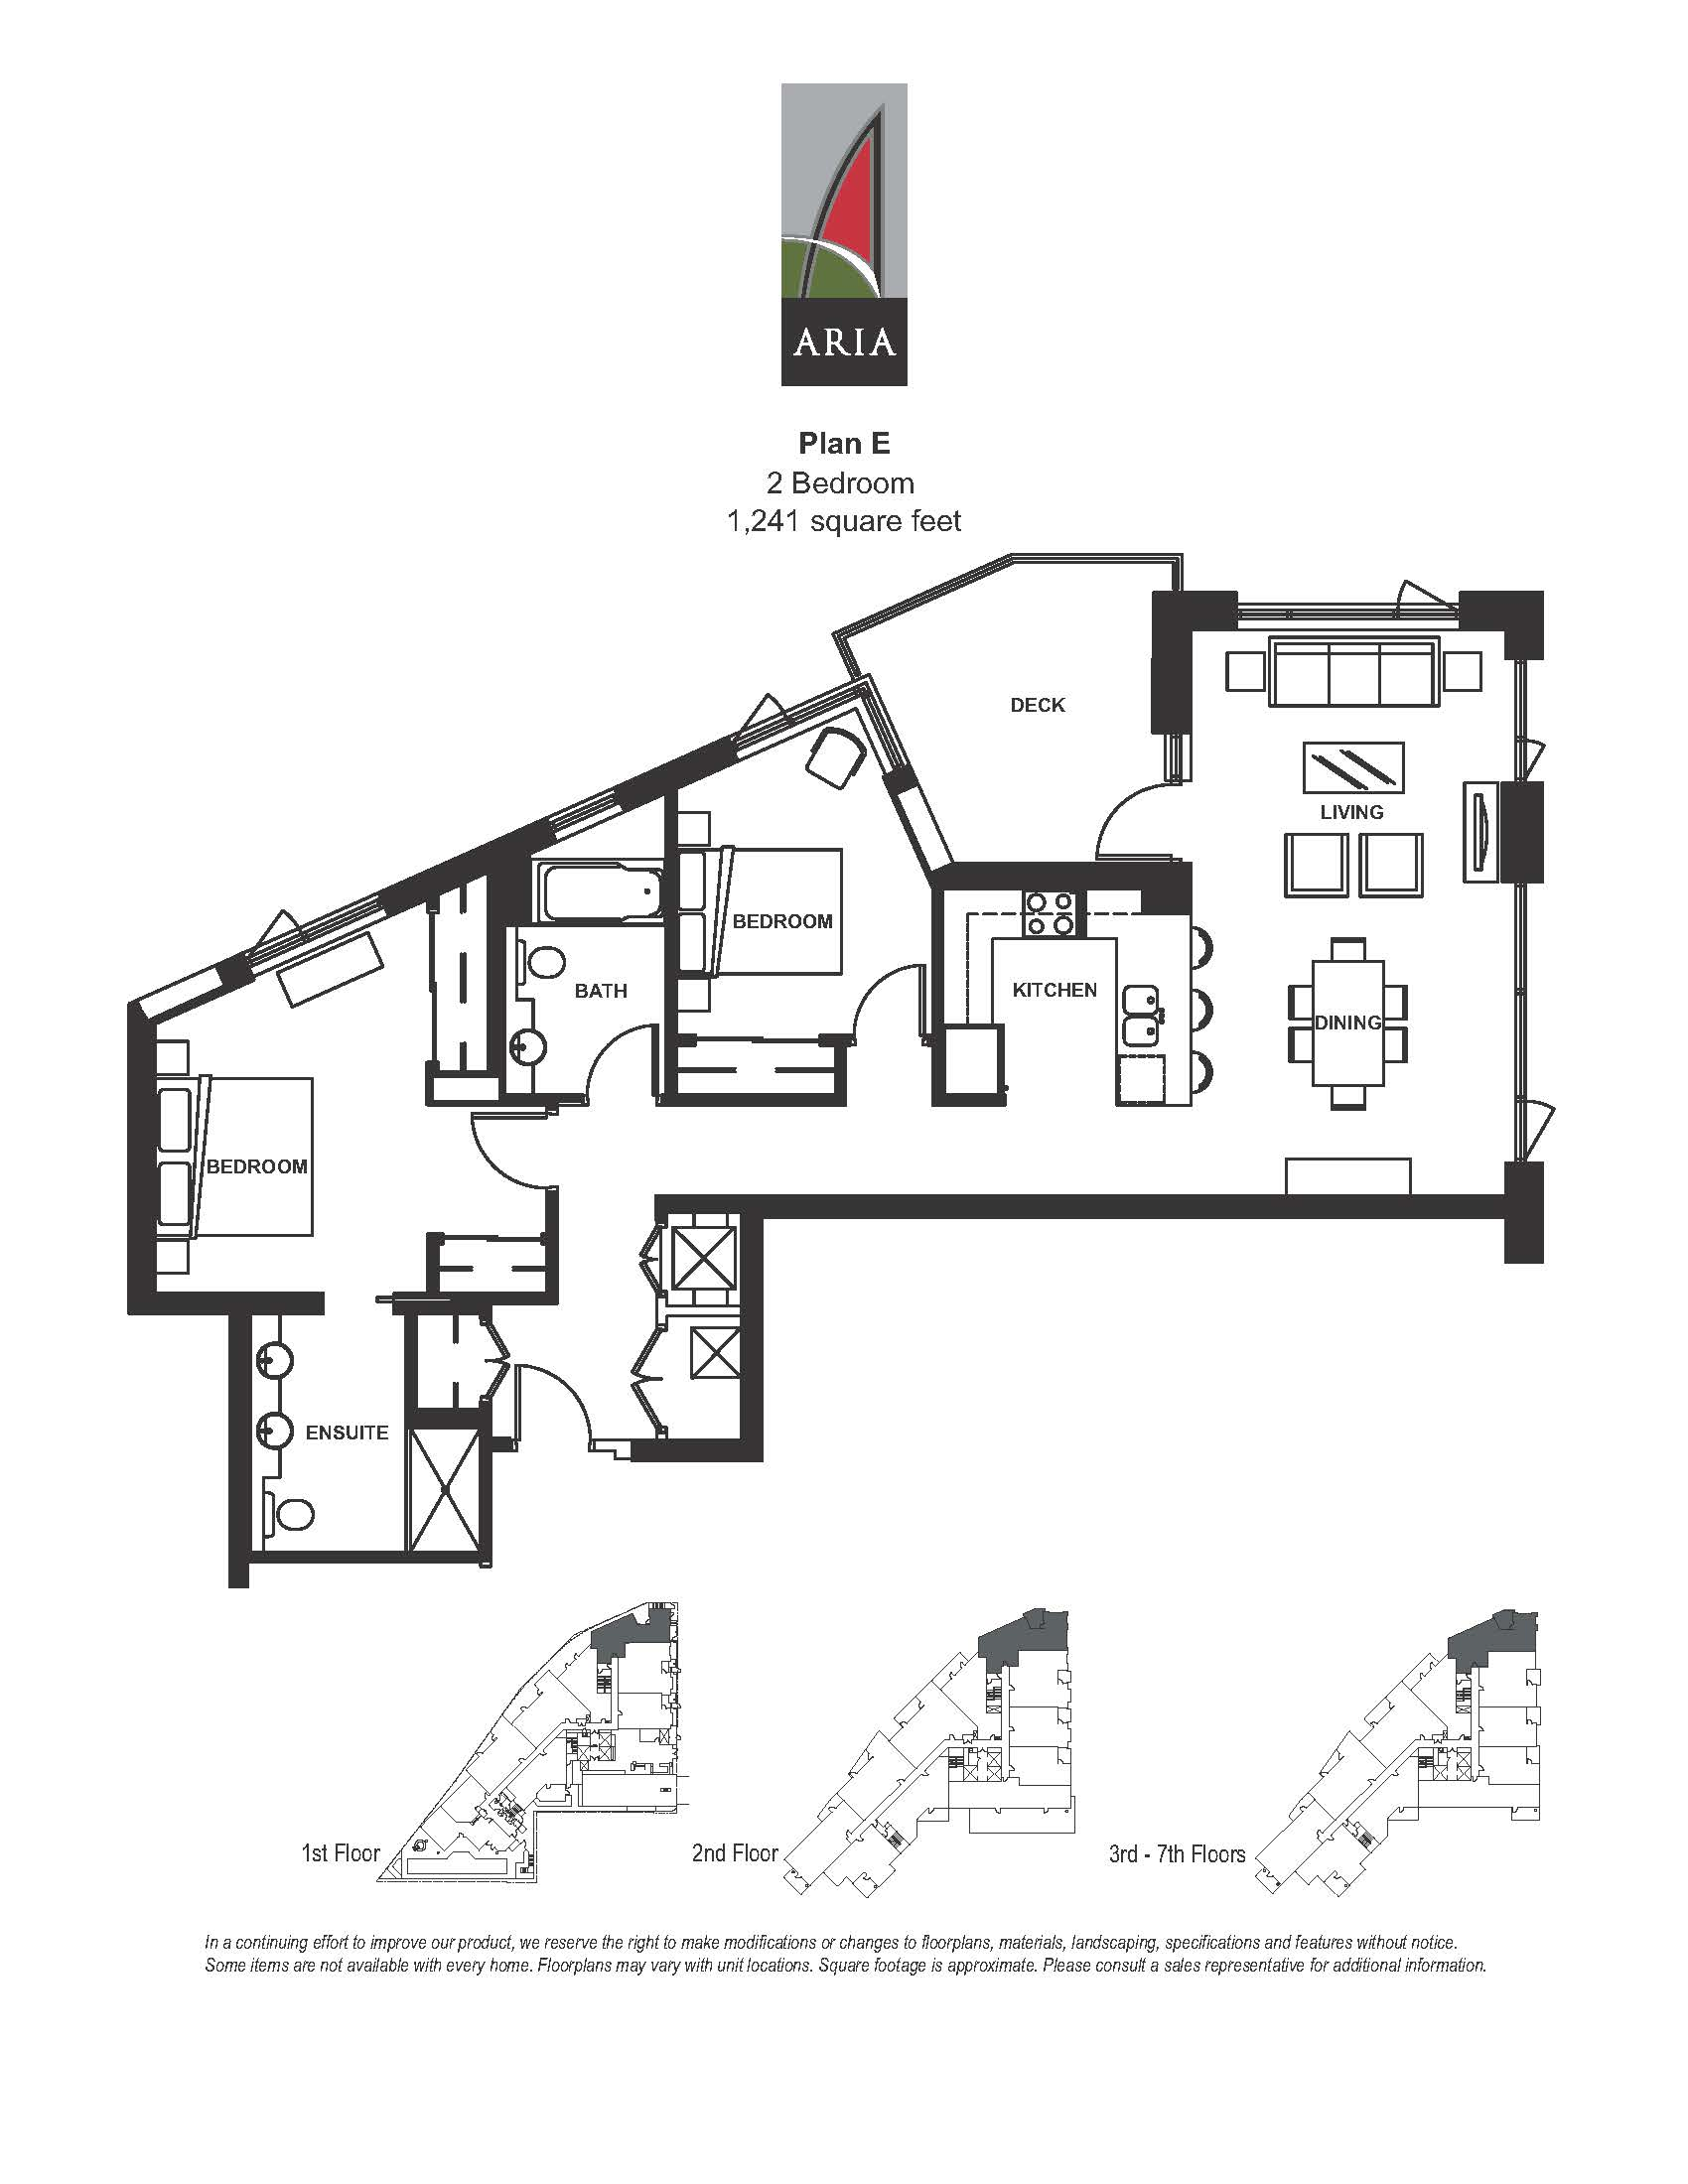 Aria 2 Bedroom - Plan E